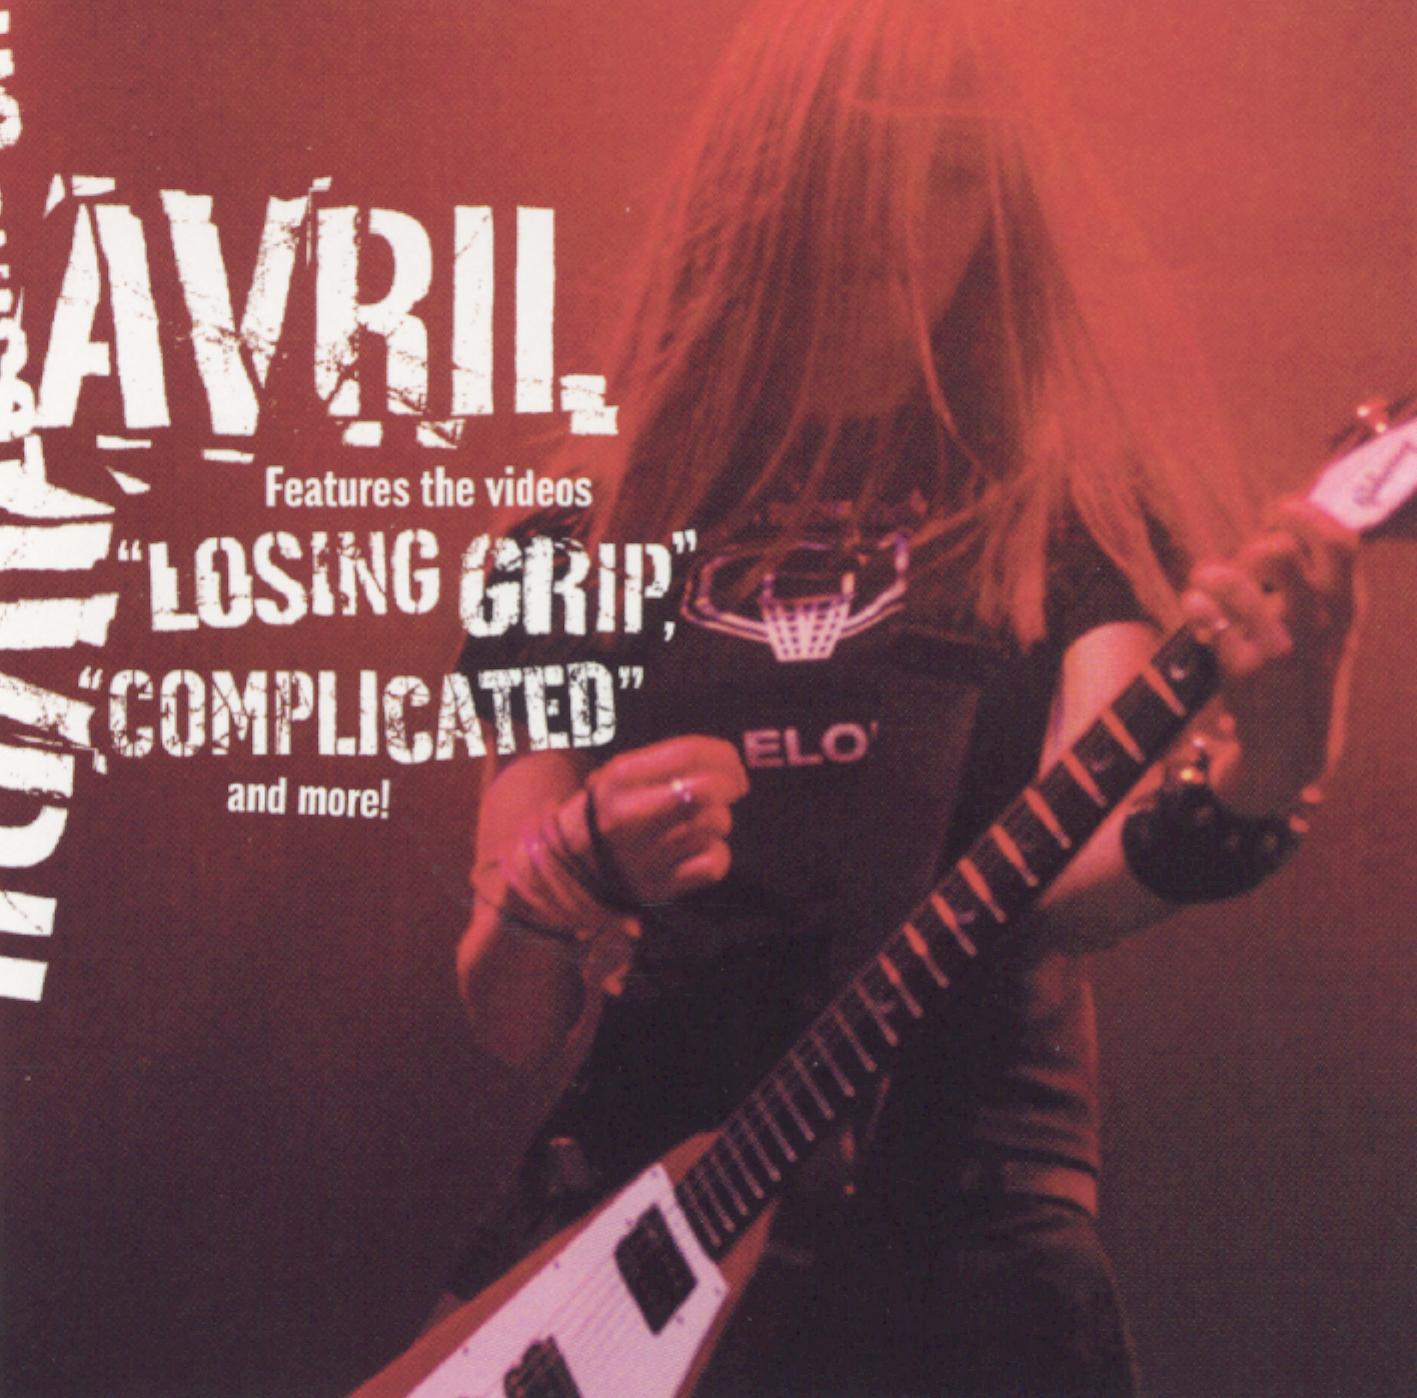 Avril Lavigne: Losing Grip/Complicated [DVD Single]